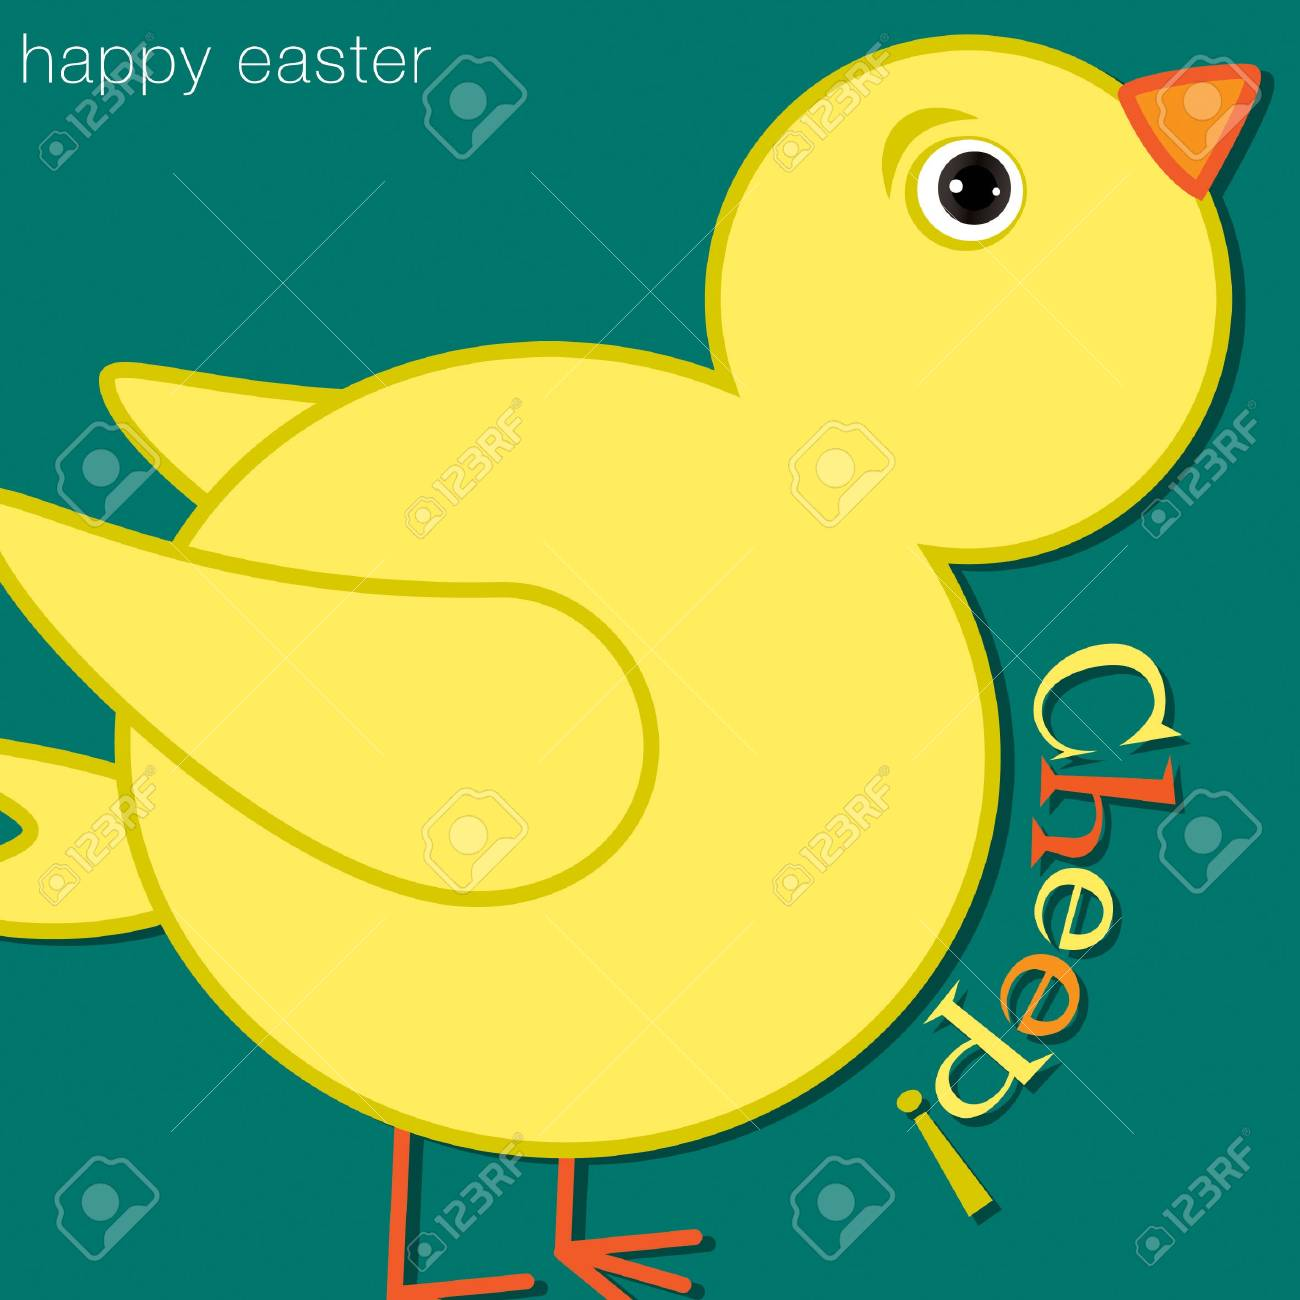 Cheep  Chick Happy Easter Card in vector format Stock Vector - 19734918